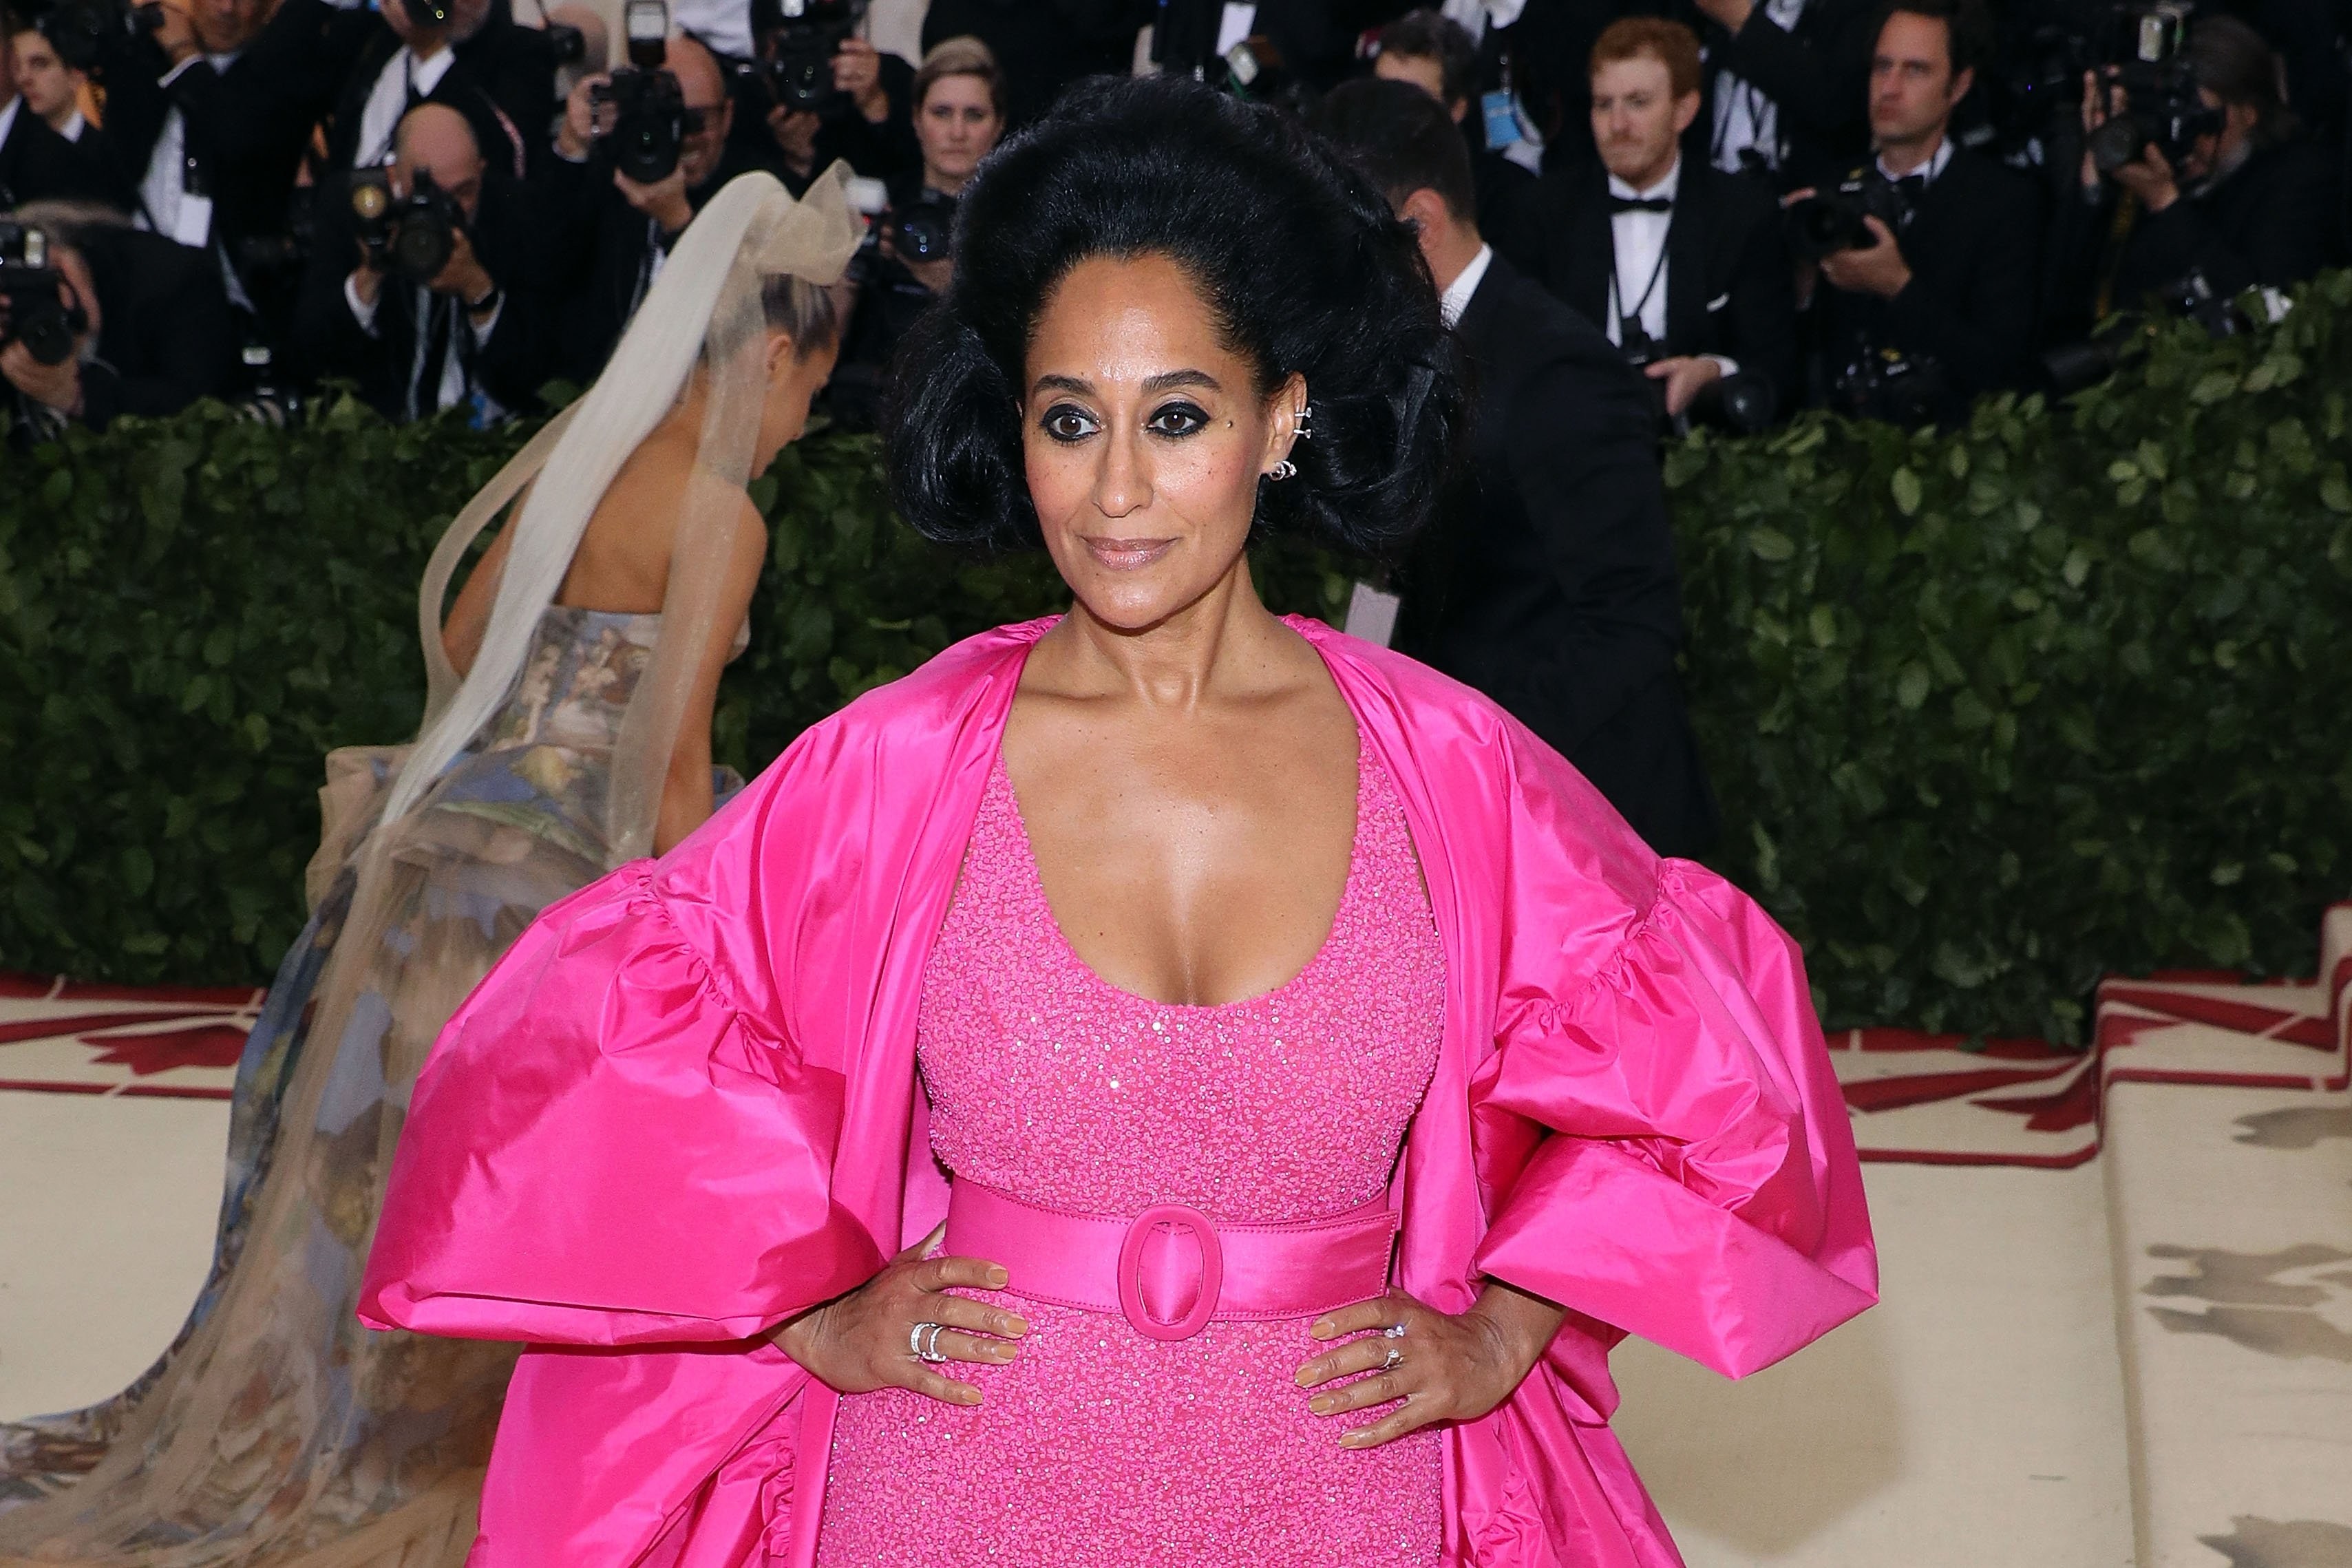 Tracee Ellis Ross poses at the 2018 Costume Institute Benefit at Metropolitan Museum of Art on May 7, 2018 in New York City.   Source: Getty Images